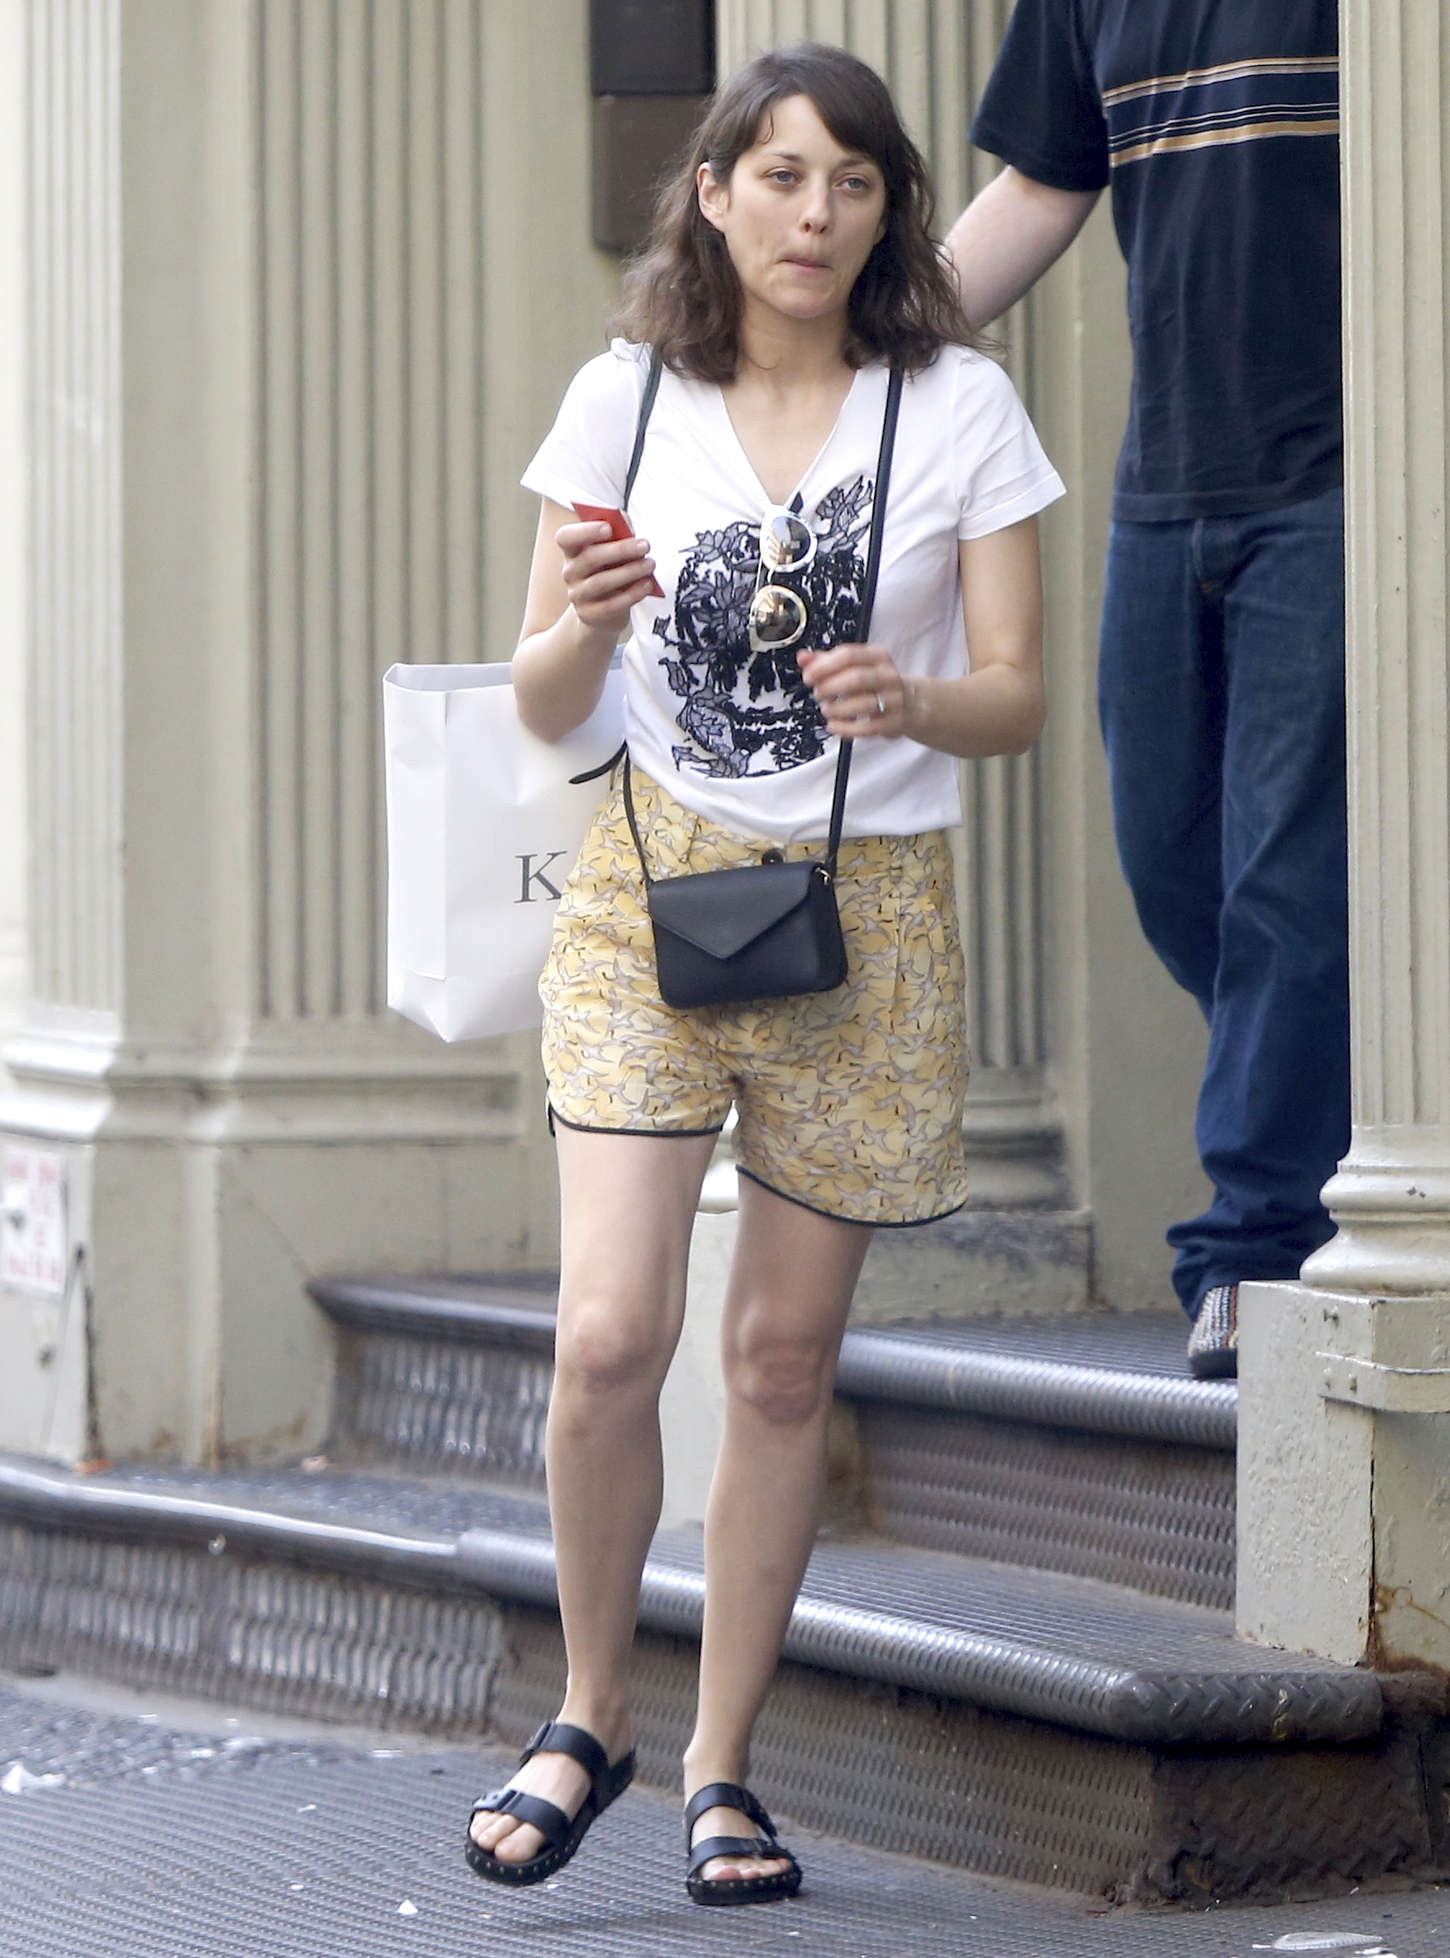 http://www.gotceleb.com/wp-content/uploads/photos/marion-cotillard/out-and-about-in-new-york-city/Marion-Cotillard-in-Shorts--13.jpg